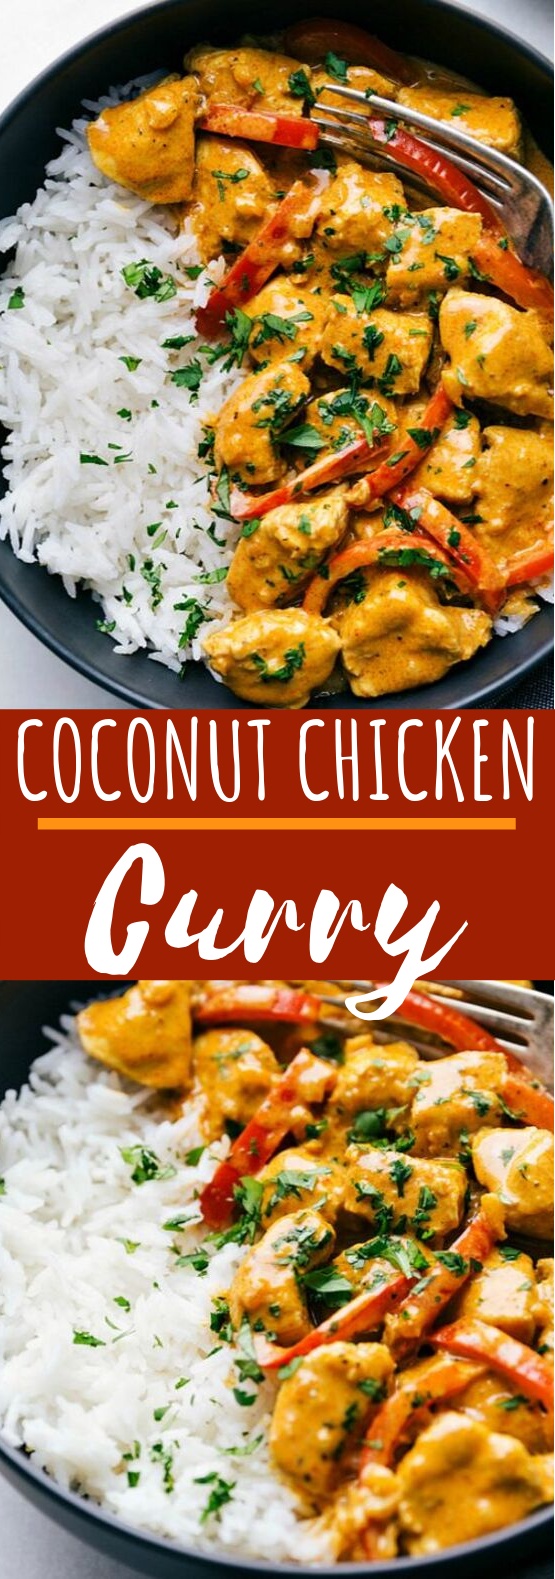 Coconut Chicken Curry #chicken #recipes